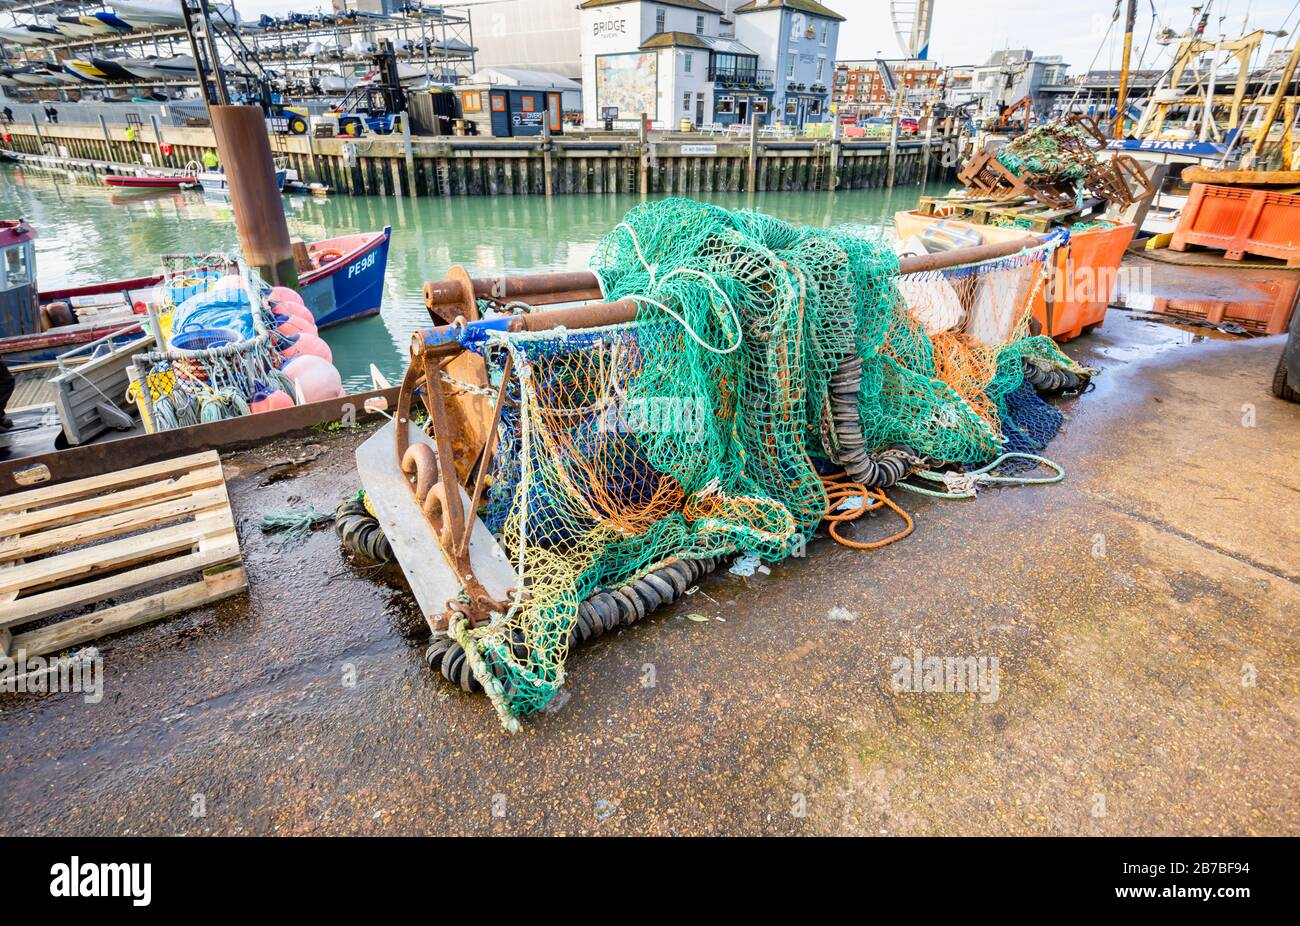 Fishing nets and tackle stored quayside at Camber Quay (The Camber), the ancient port in Old Portsmouth, Hampshire, south coast England Stock Photo